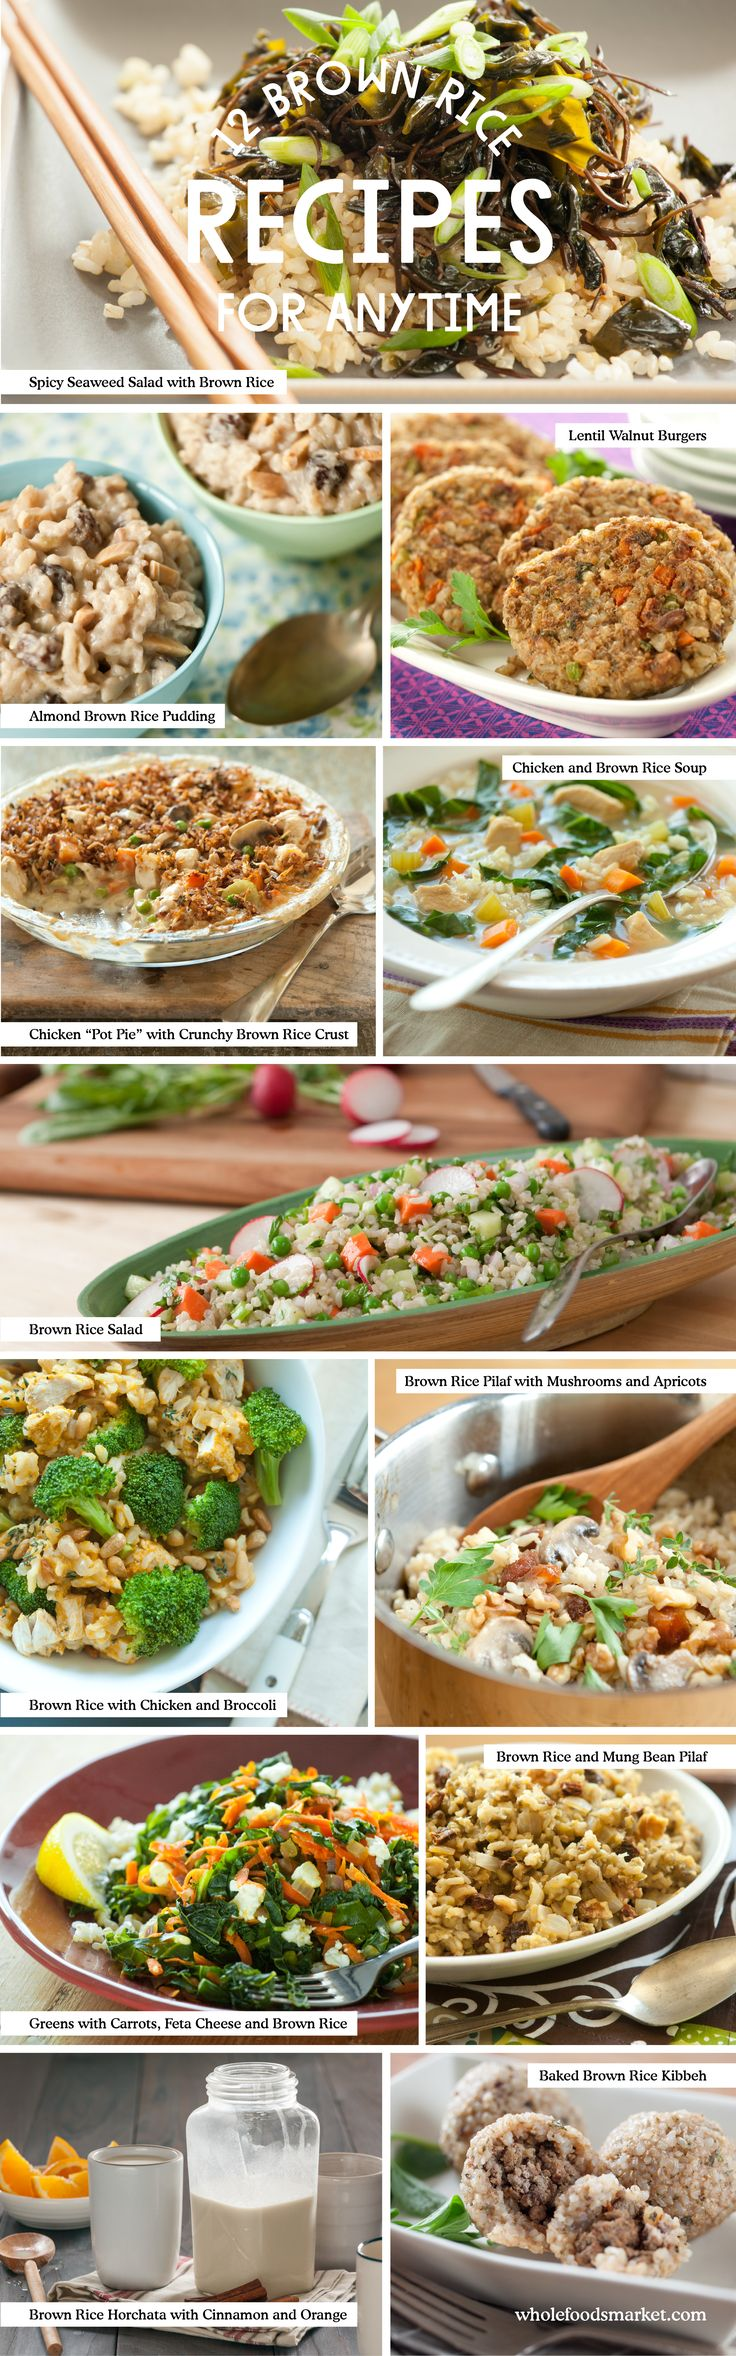 """12 Recipes for Brown Rice // Spicy Seaweed Salad with Brown Rice // Almond Brown Rice Pudding // Lentil Walnut Burgers // Chicken """"Pot Pie"""" with Crunchy Brown Rice Crust // Chicken and Brown Rice Soup // Brown Rice Salad // Brown Rice Pilaf with Mushrooms and Apricots // Greens with Carrots, Feta Cheese and Brown Rice // Brown Rice with Mung Bean Pilaf // Brown Rice Horchata with Cinnamon and Orange // Baked Brown Rice Kibbeh"""